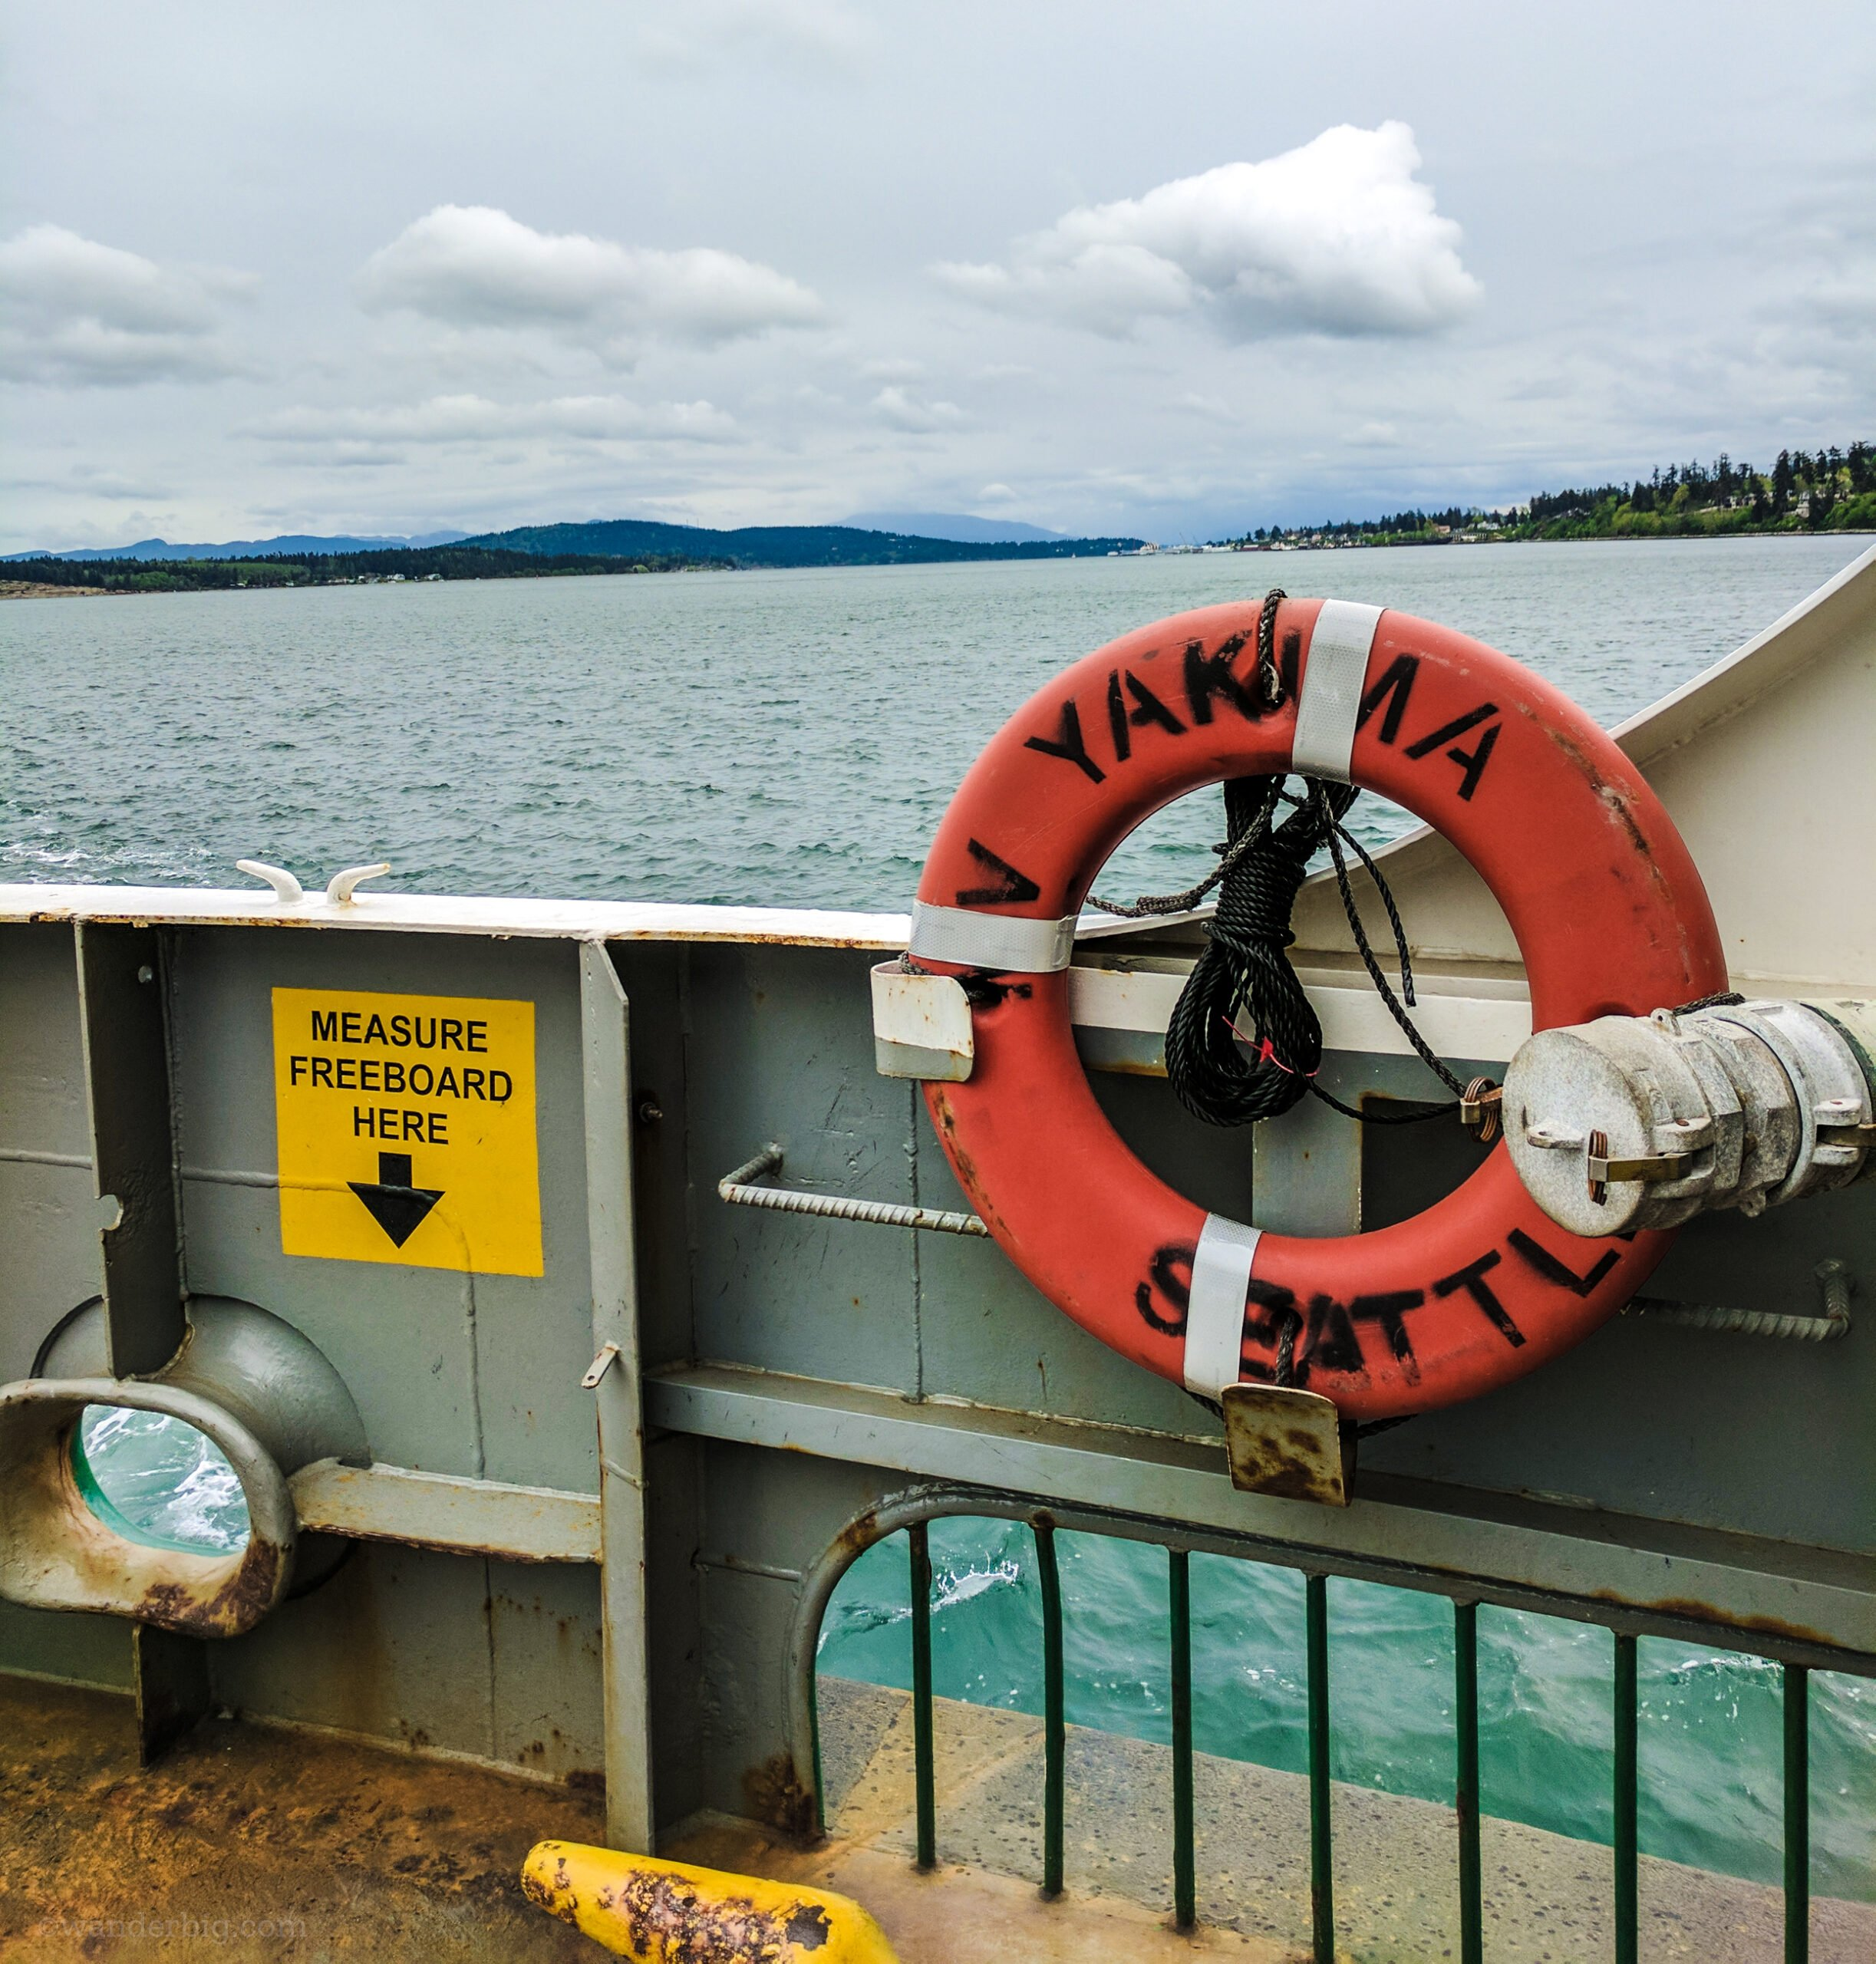 A view of the puget sound landscape over the side of a ferry.